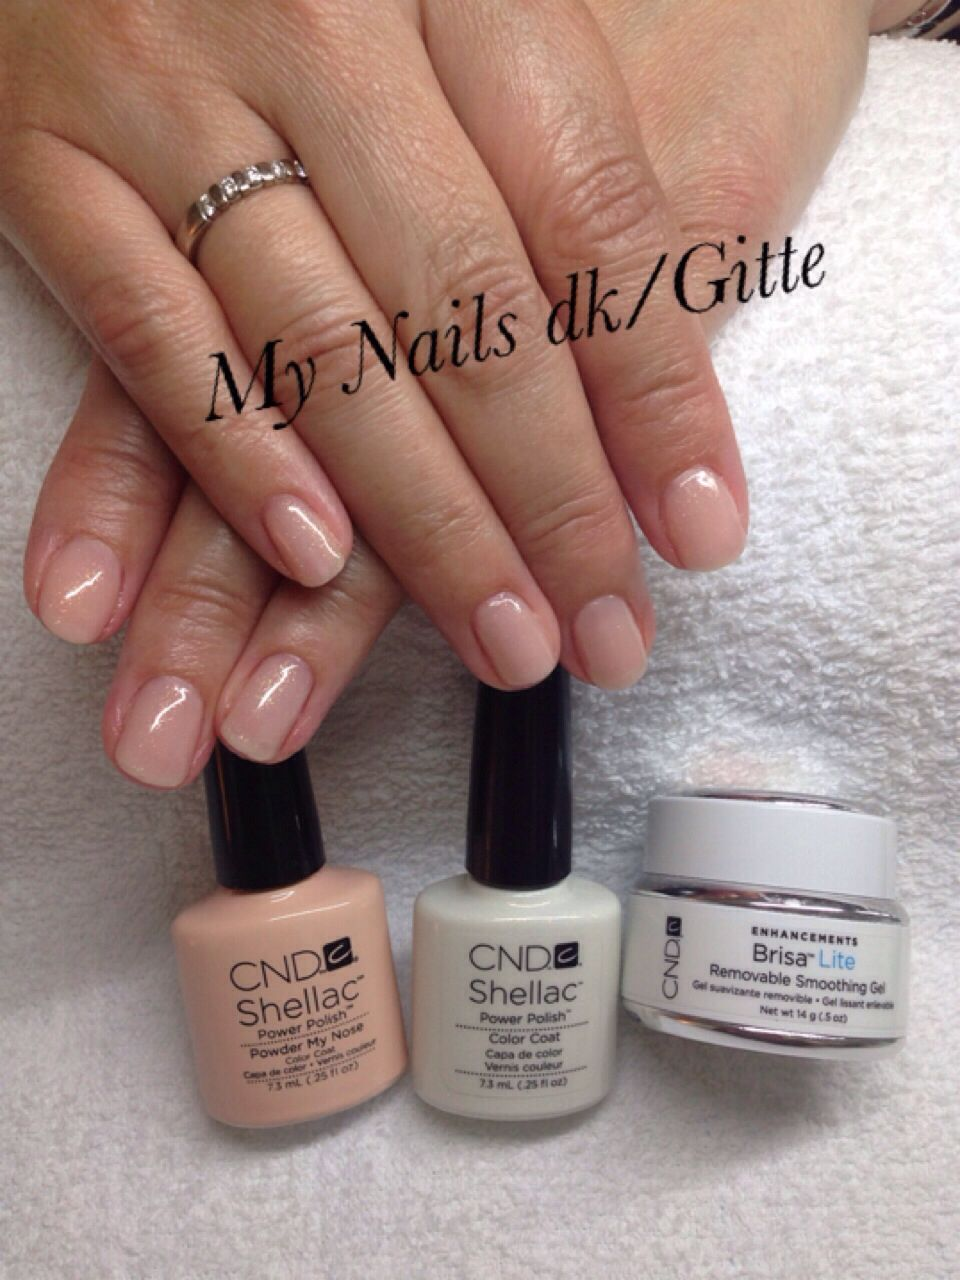 CND Brisa Lite smoothing Gel & CND Shellac På natur negle. Nails ...